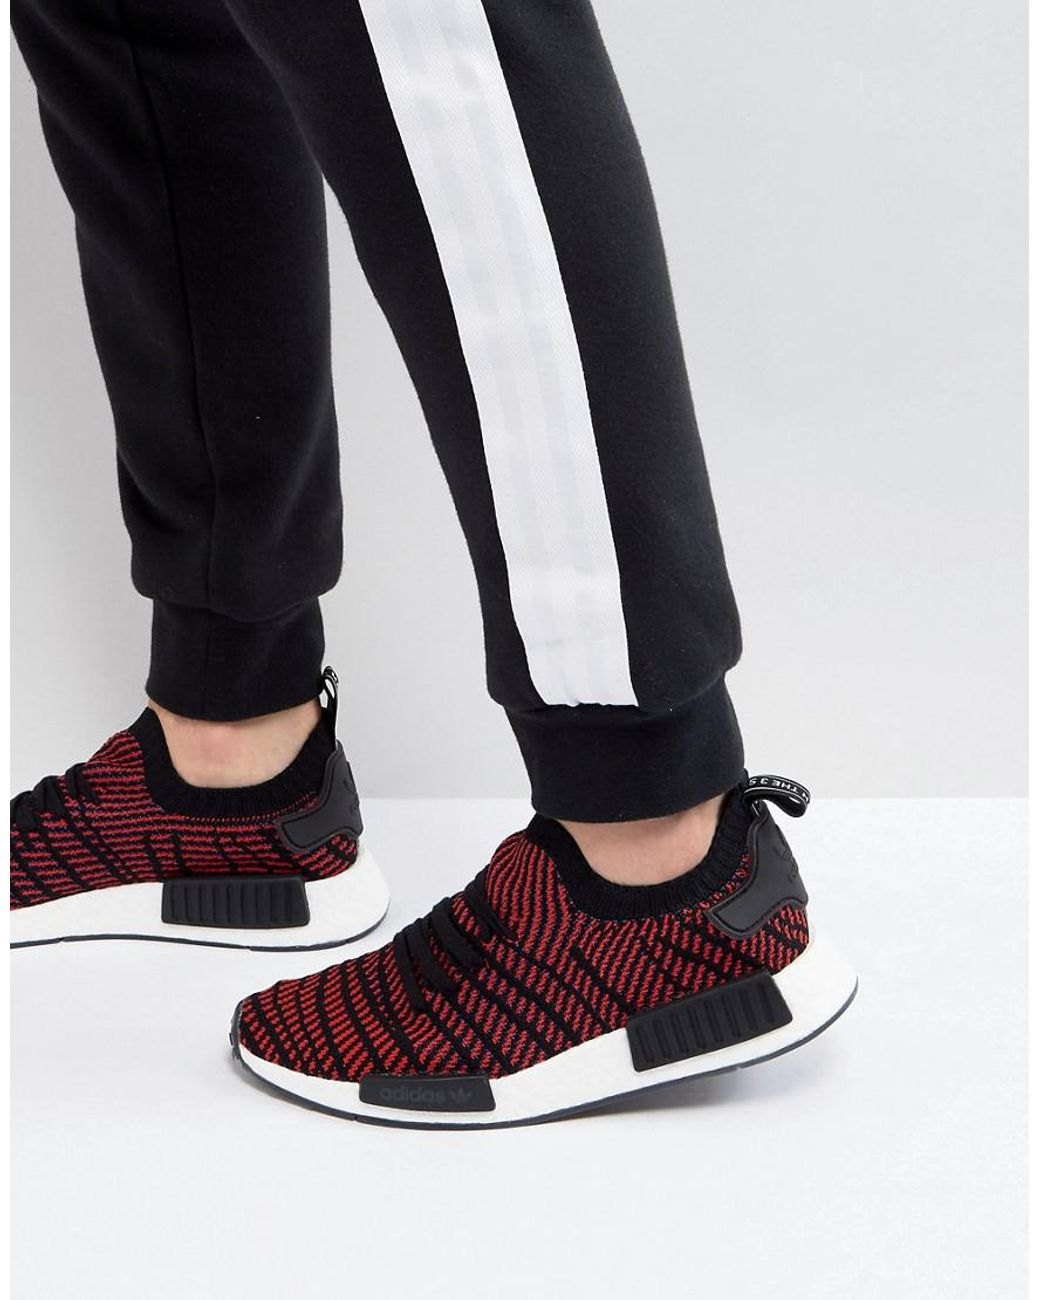 adidas NMD_R1 STLT PK CQ2385: Amazon.co.uk: Shoes & Bags